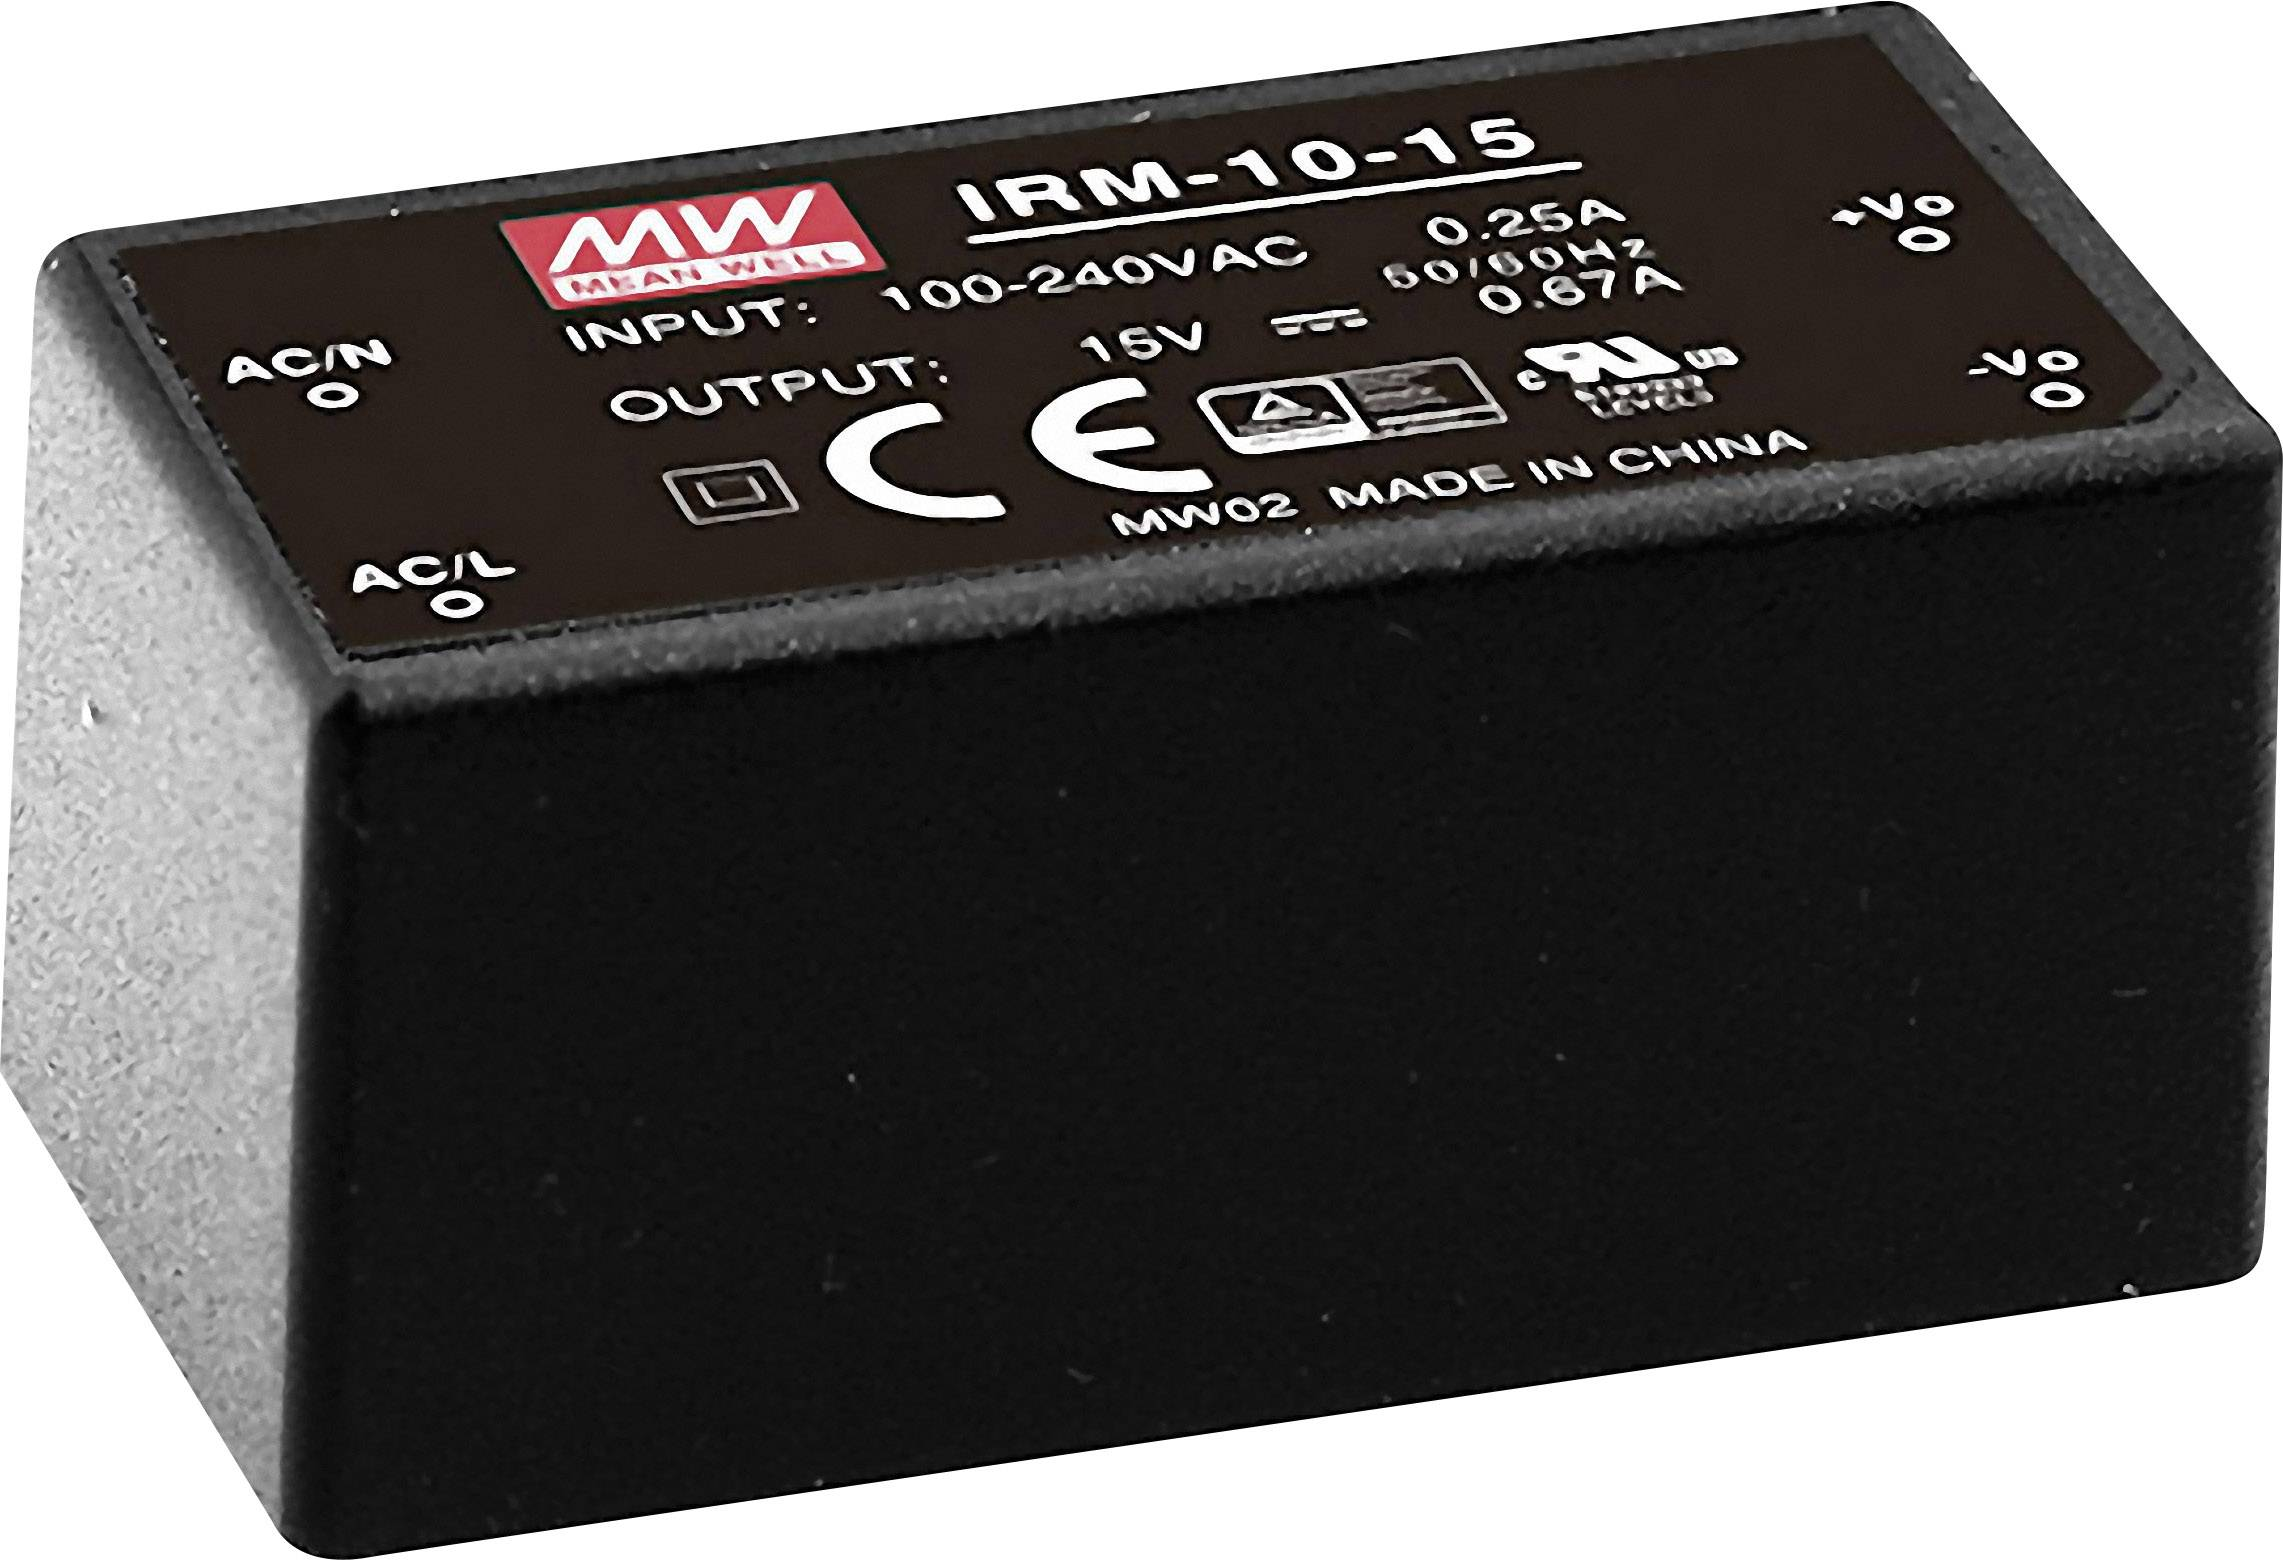 AC/DC zdroj do DPS Mean Well IRM-10-15, 15 V/DC, 0.67 A, 10 W